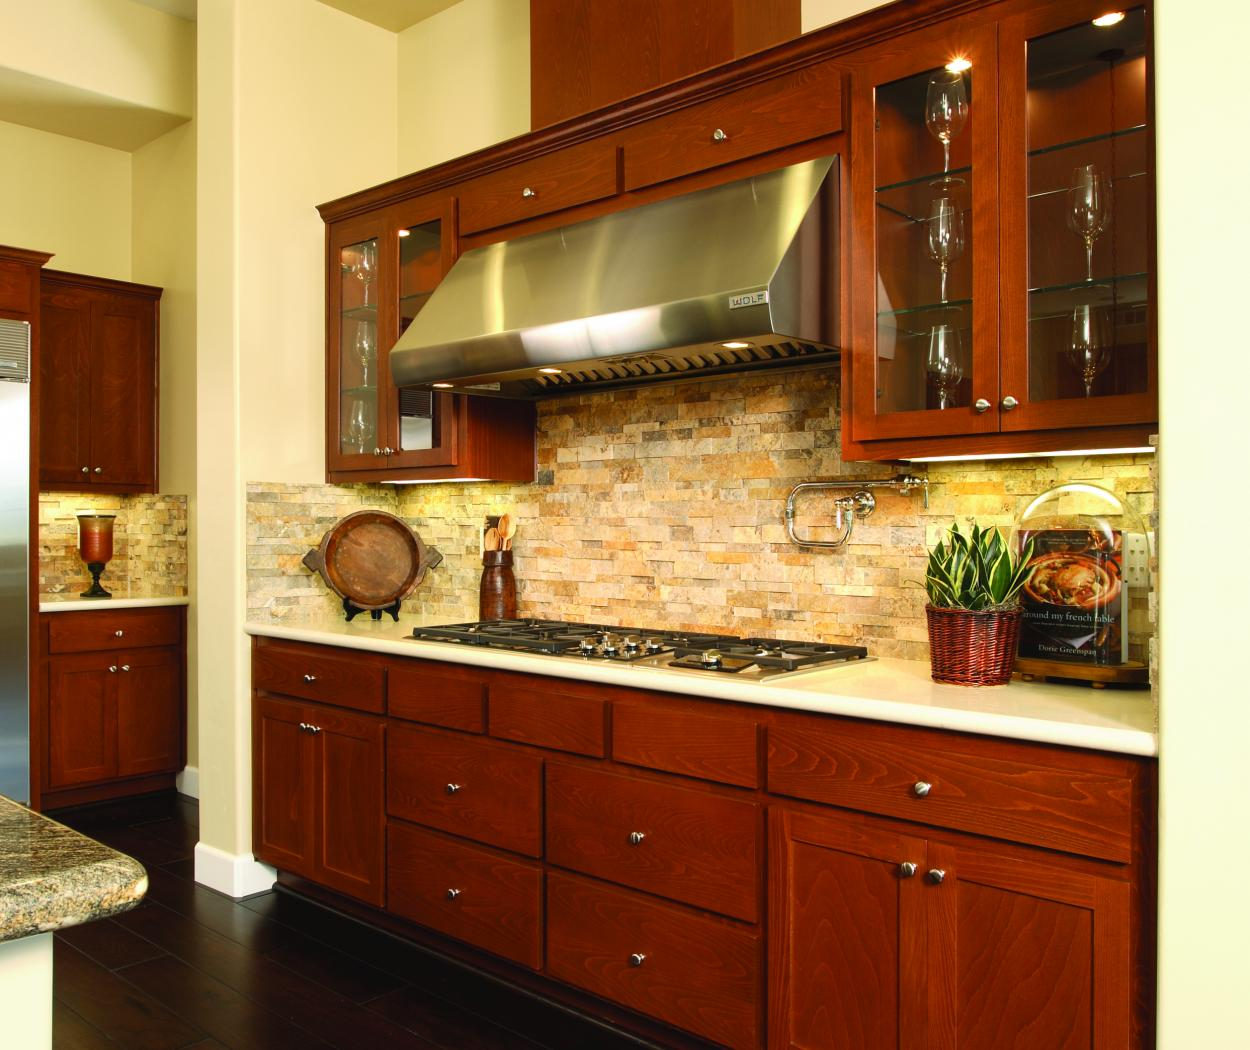 Transitional Stained Kitchen with Granite Counter Tops, Glass Doors and Stainless Steel Appliances